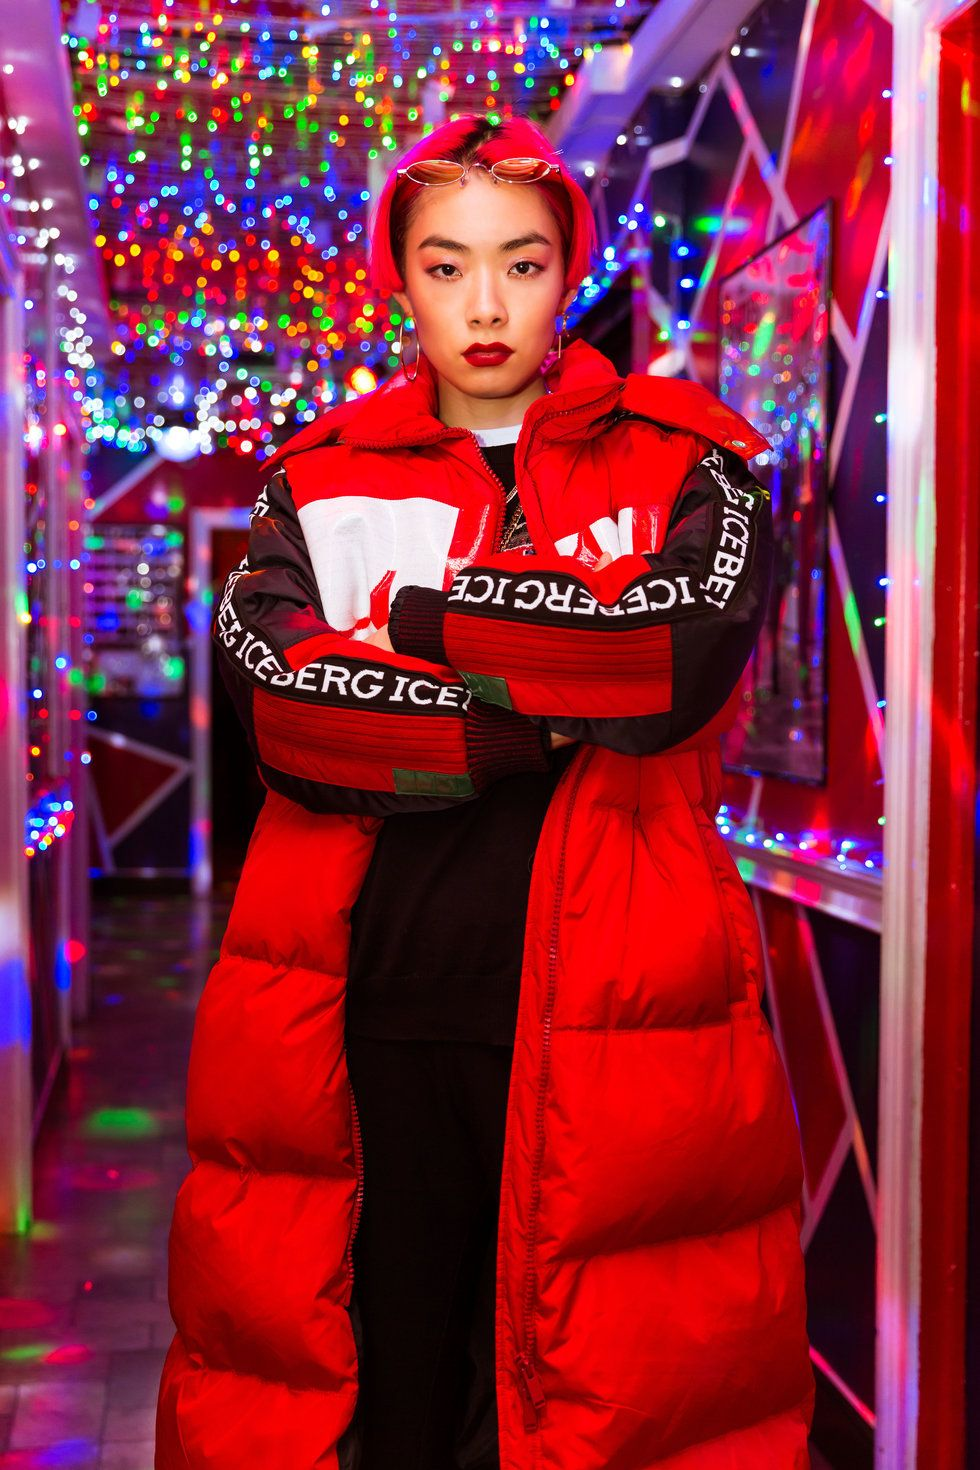 Karaoke With Pop's Next Big Star: Rina Sawayama - PAPER